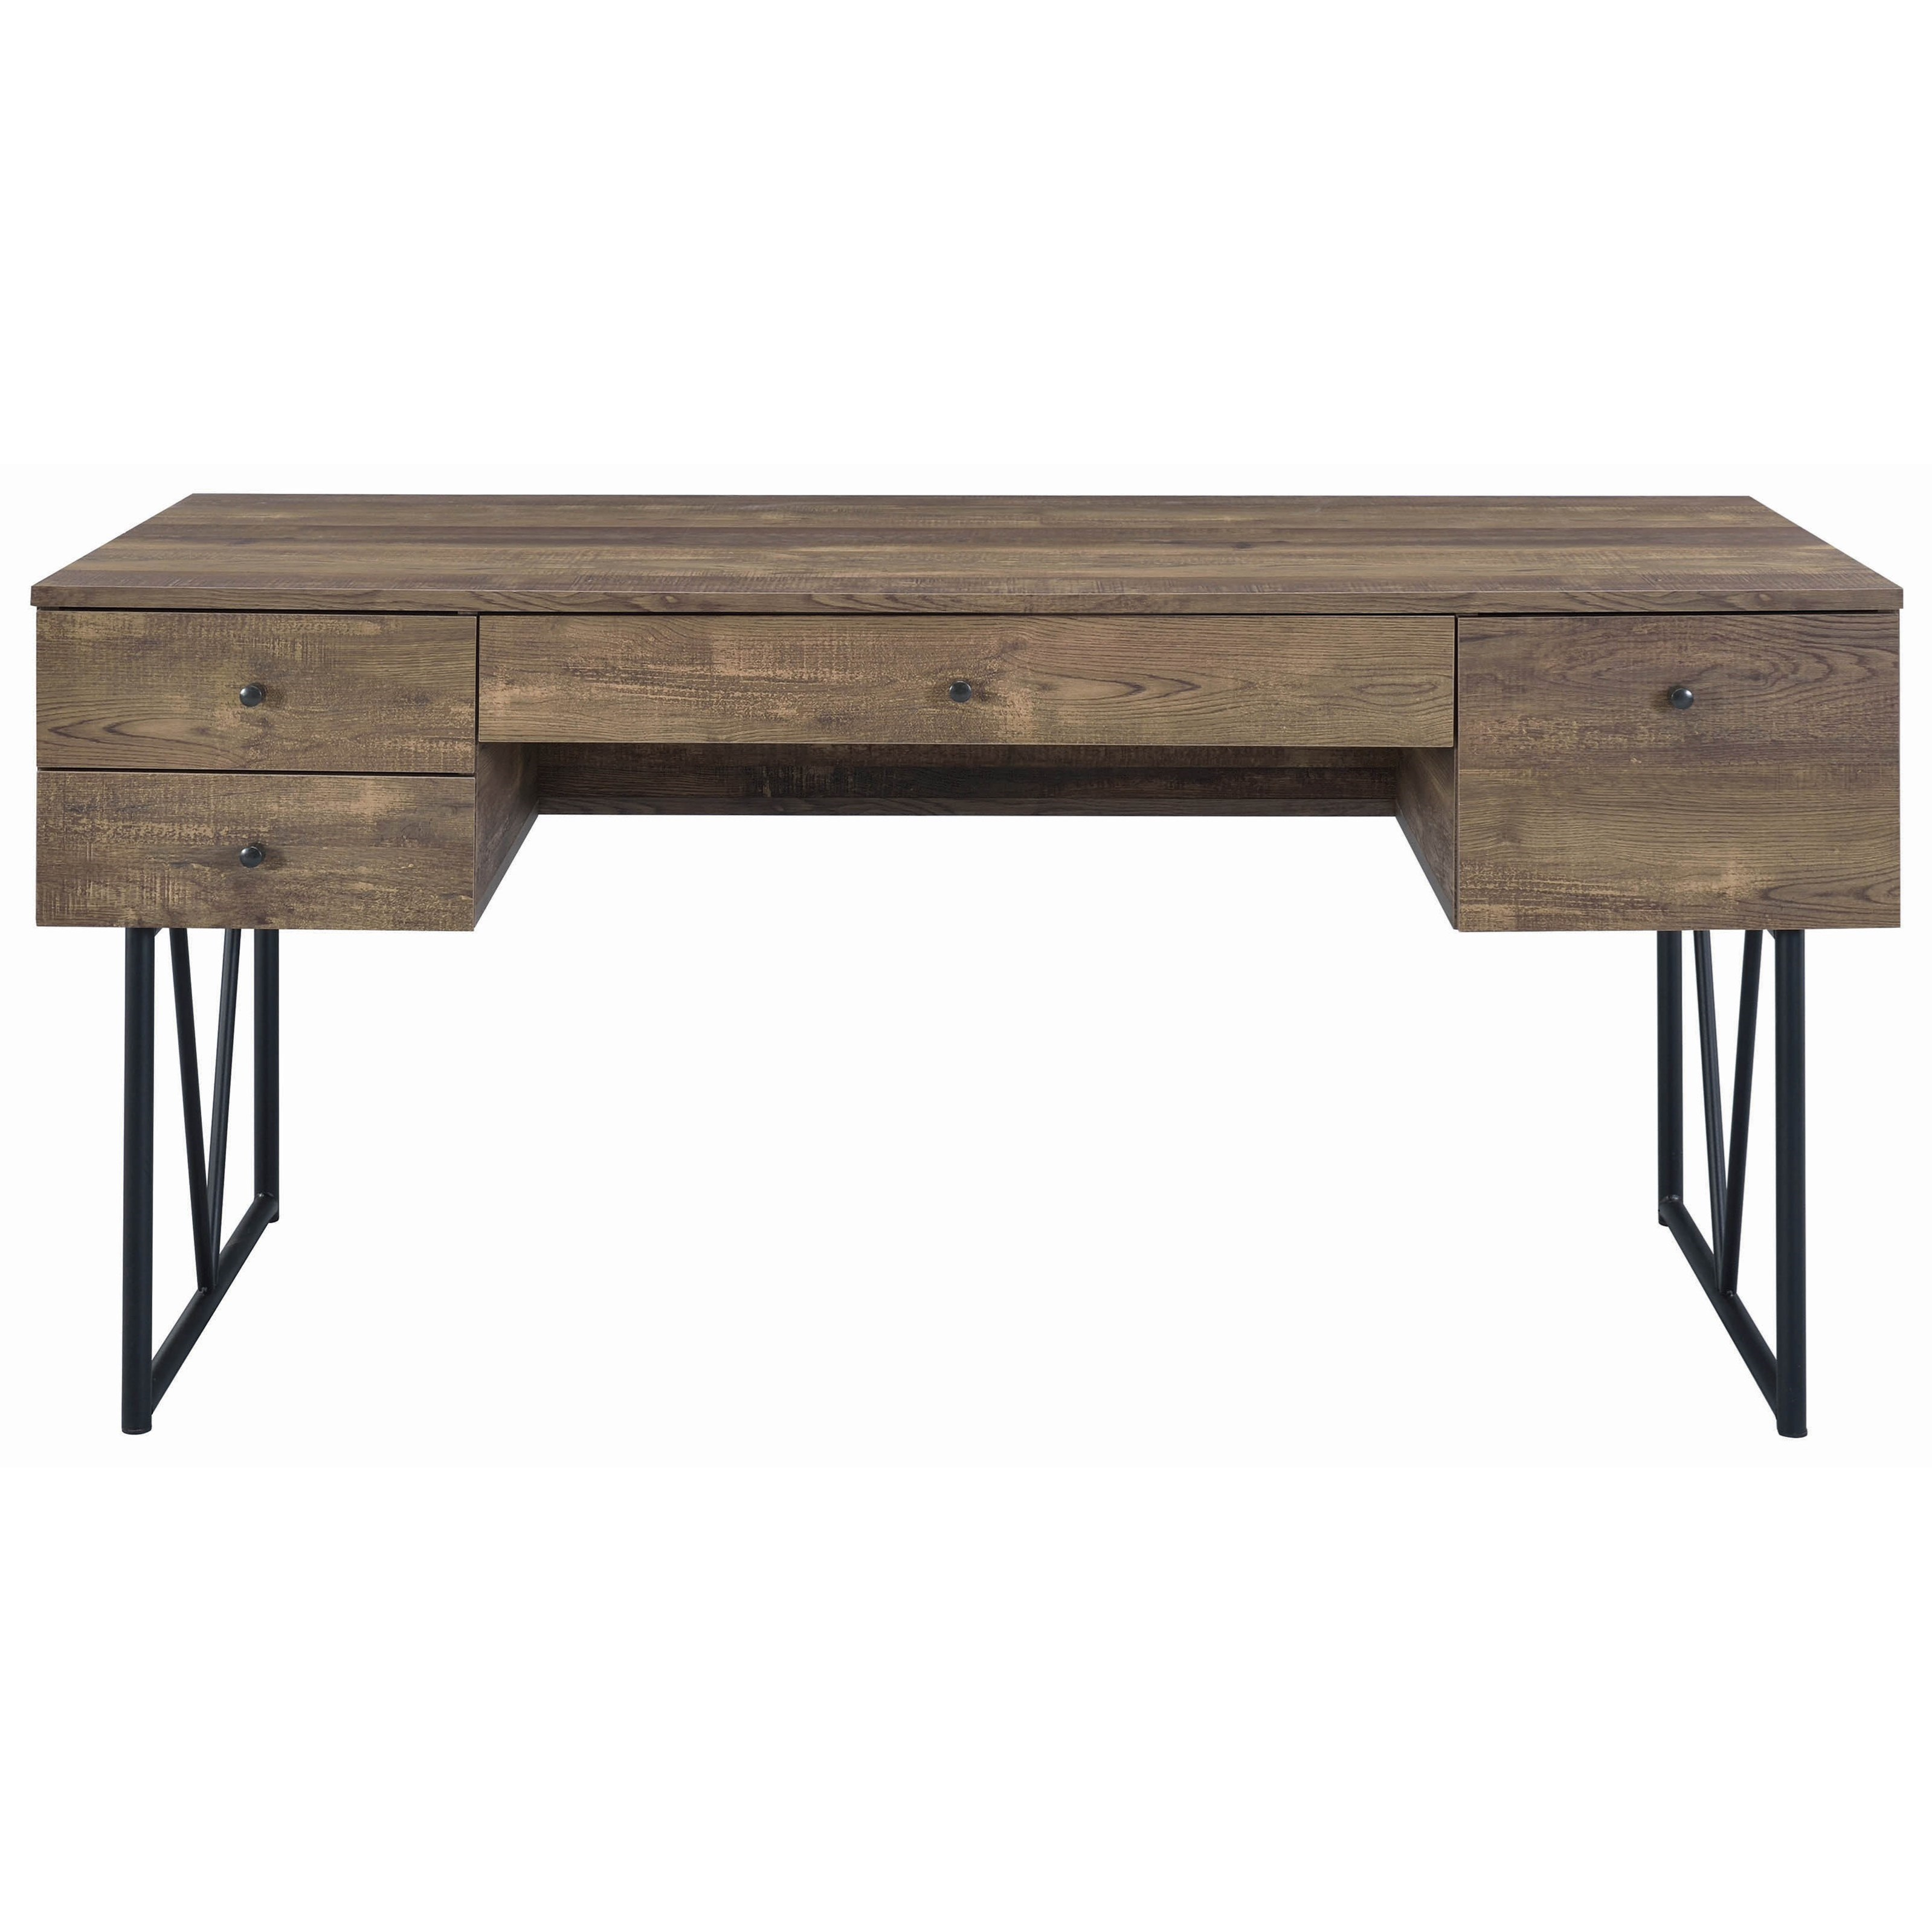 Analiese Writing Desk by Coaster at Northeast Factory Direct